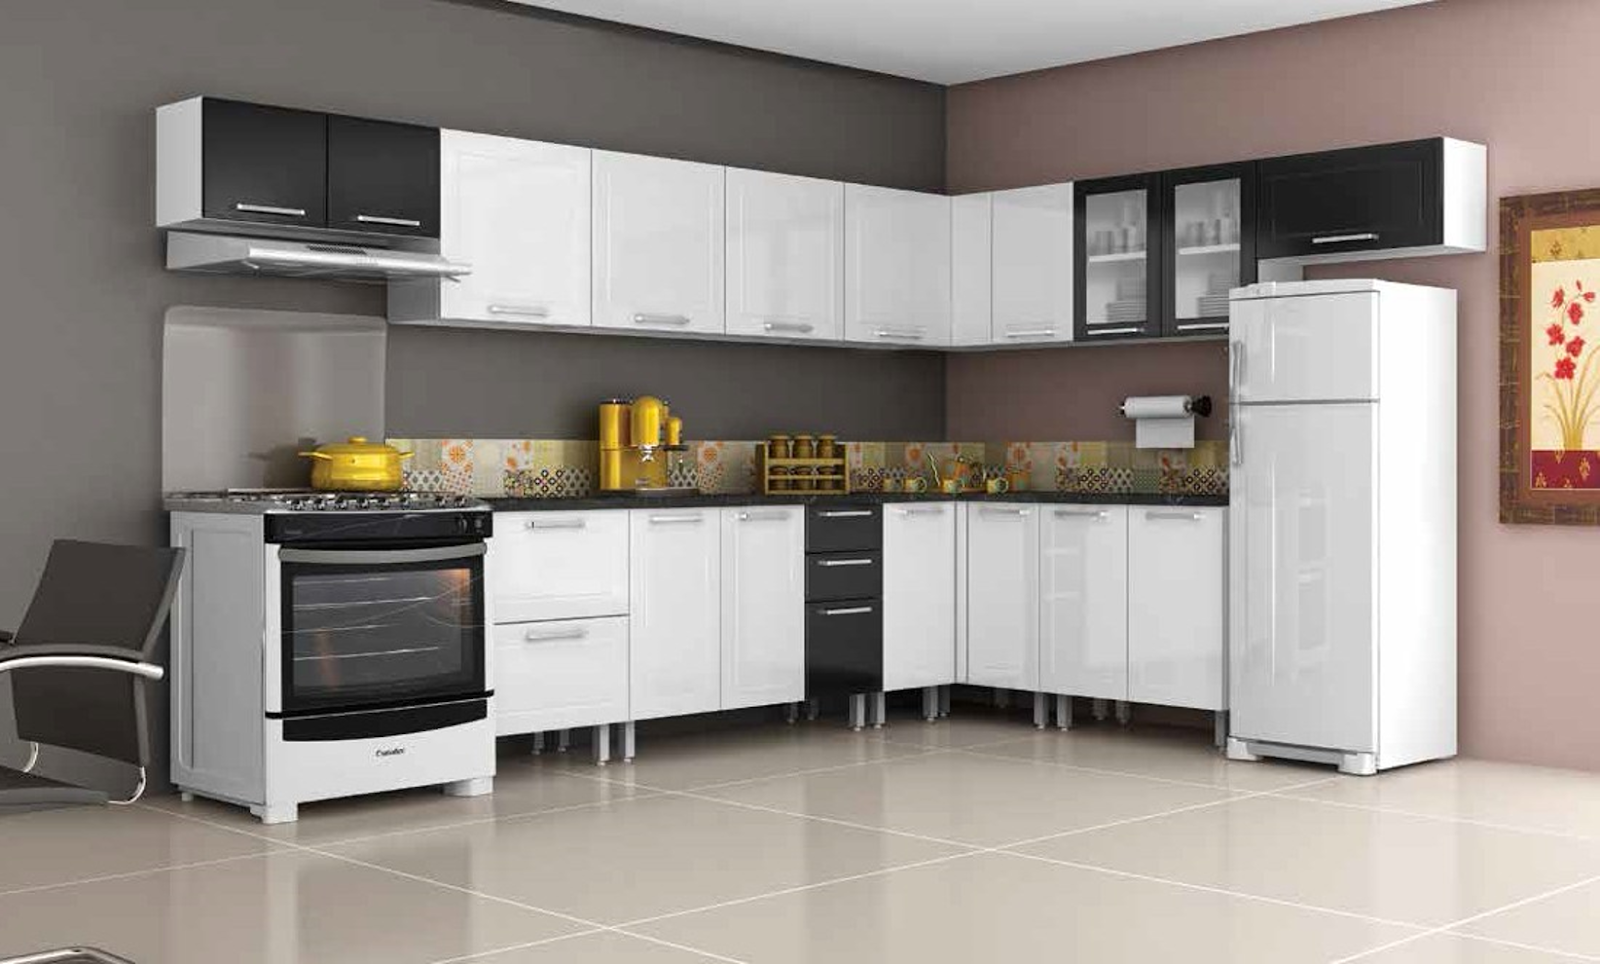 1 Measure The Place Planned For Installation Of Kitchen Modules 2 Calculate Size And Determine Number Cabinets 3 Select Color